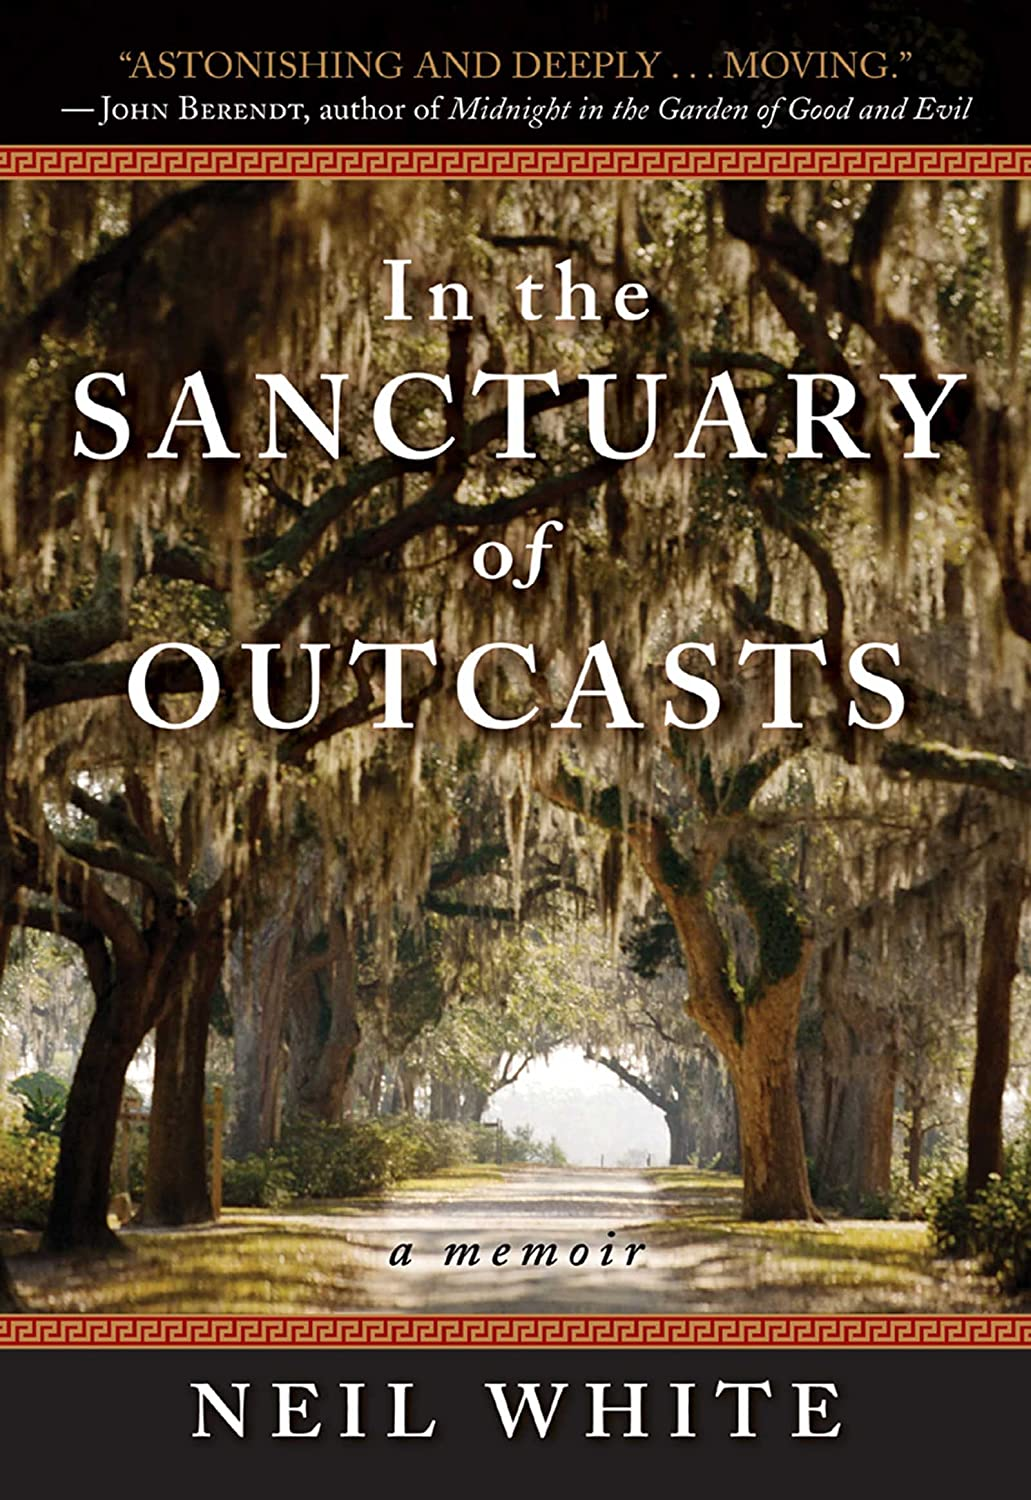 In the Sanctuary of Outcasts by Neil White | The Magic of Books